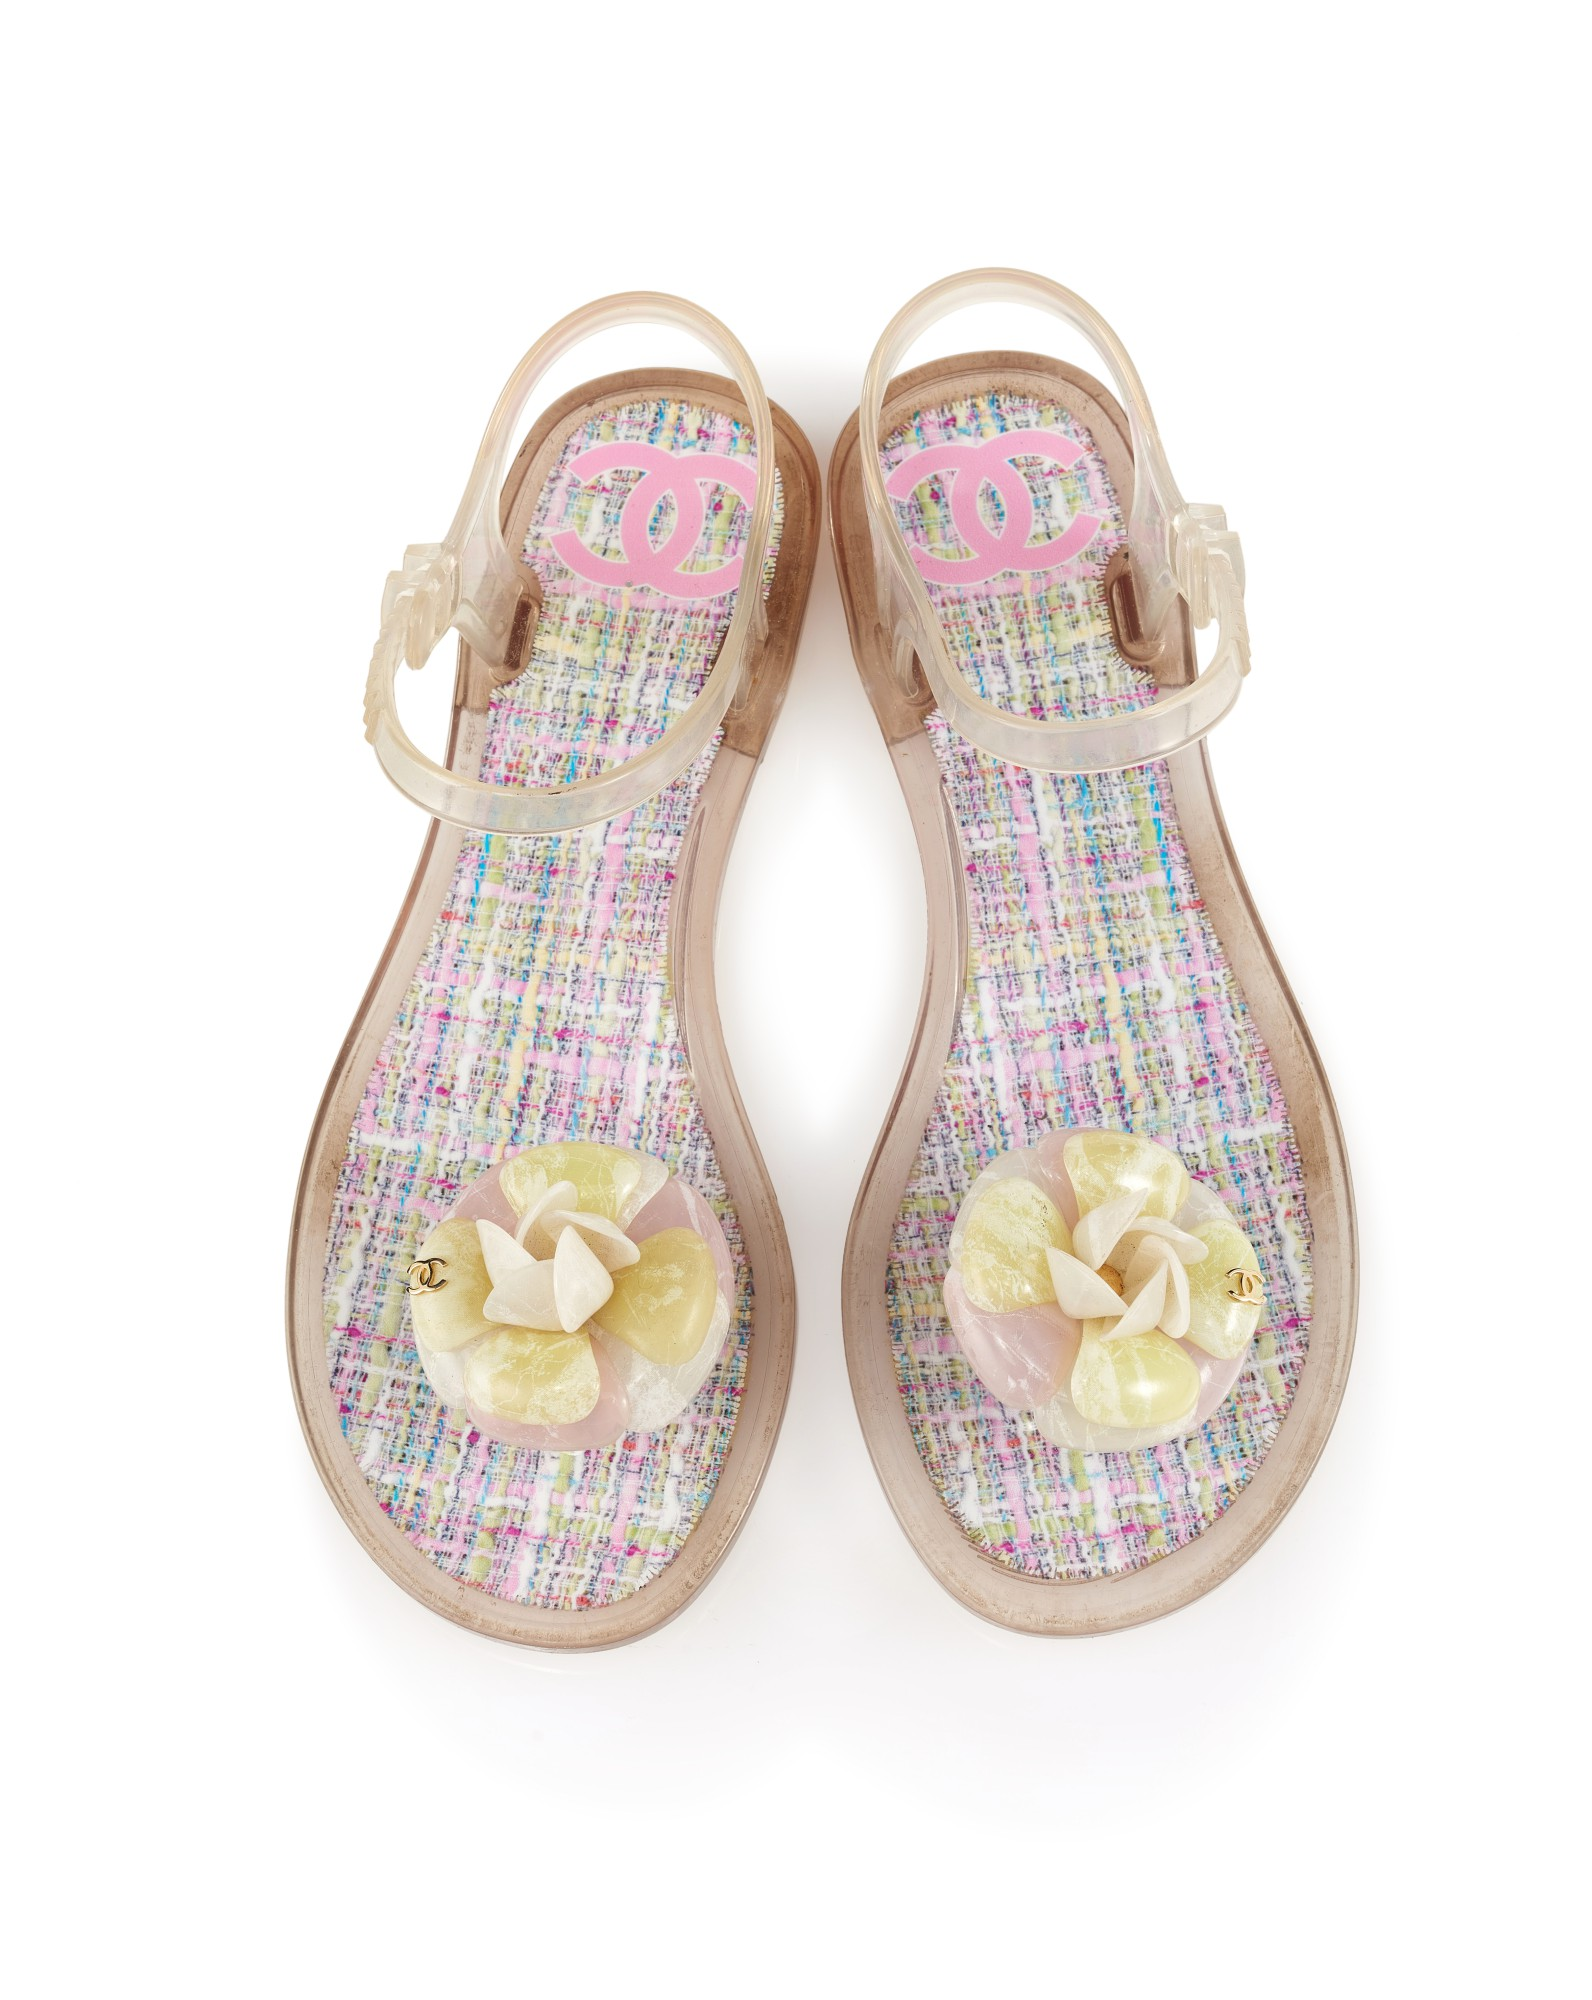 chanel pink jelly sandals